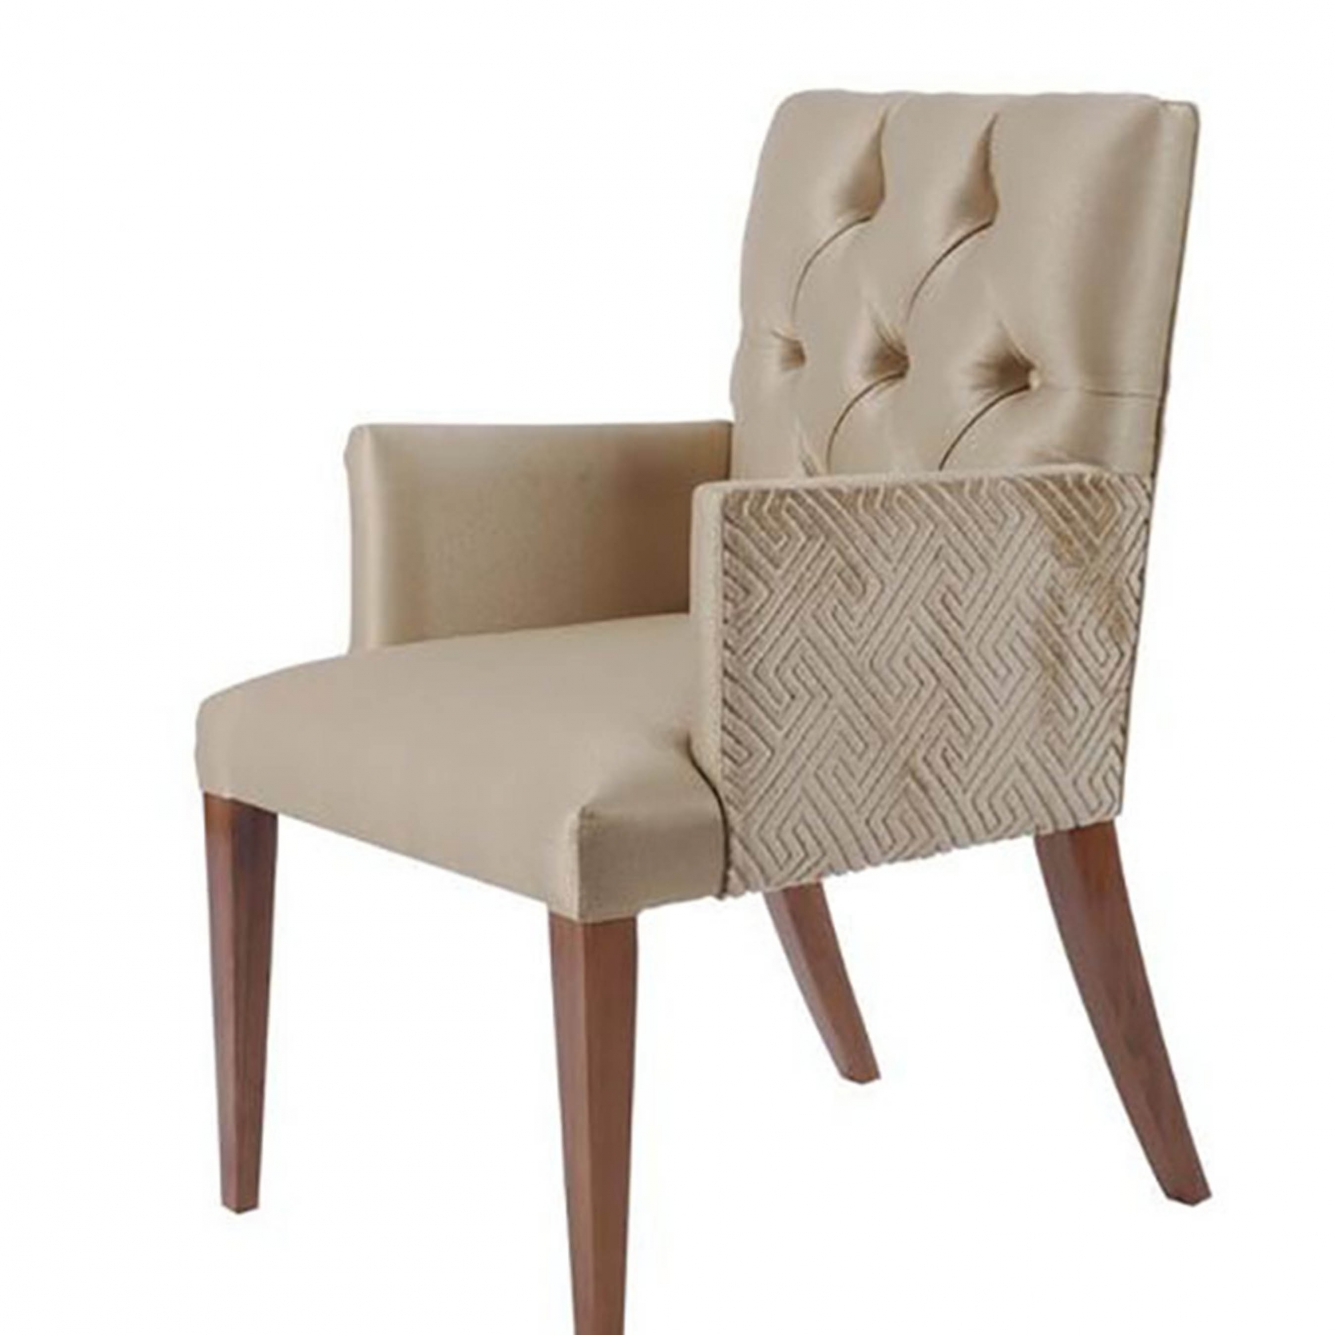 House Haven Dining Chairs 0000 St Germaine carver